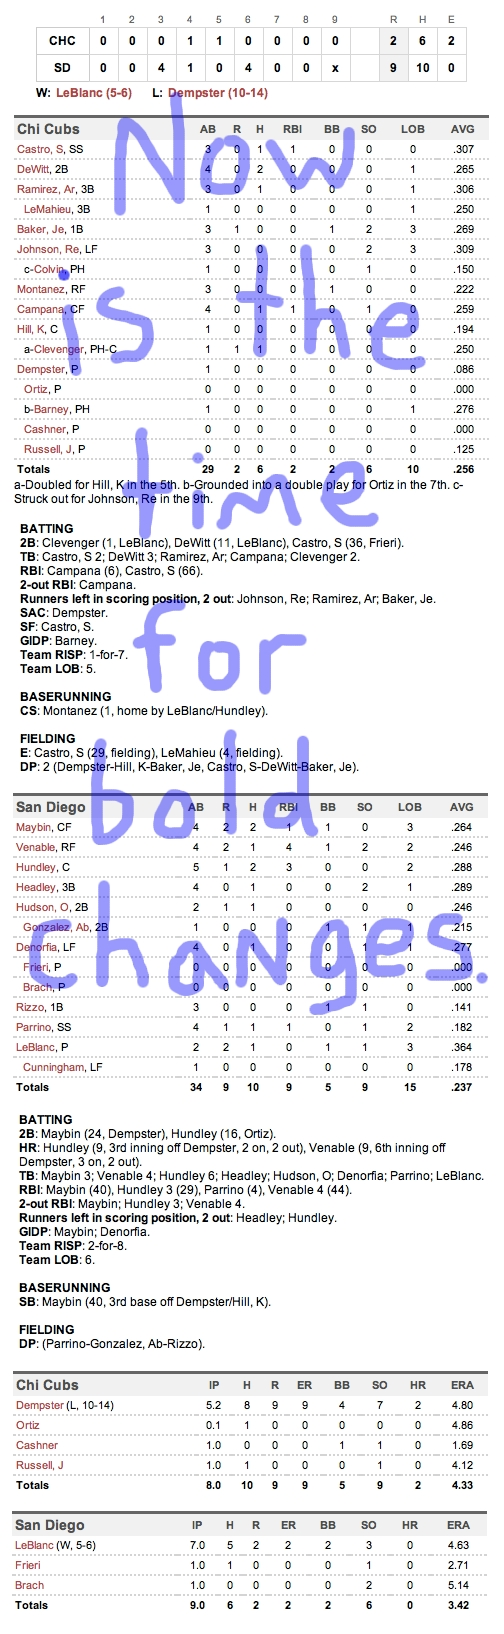 Enhanced Box Score: Cubs 2, Padres 9 – September 28, 2011